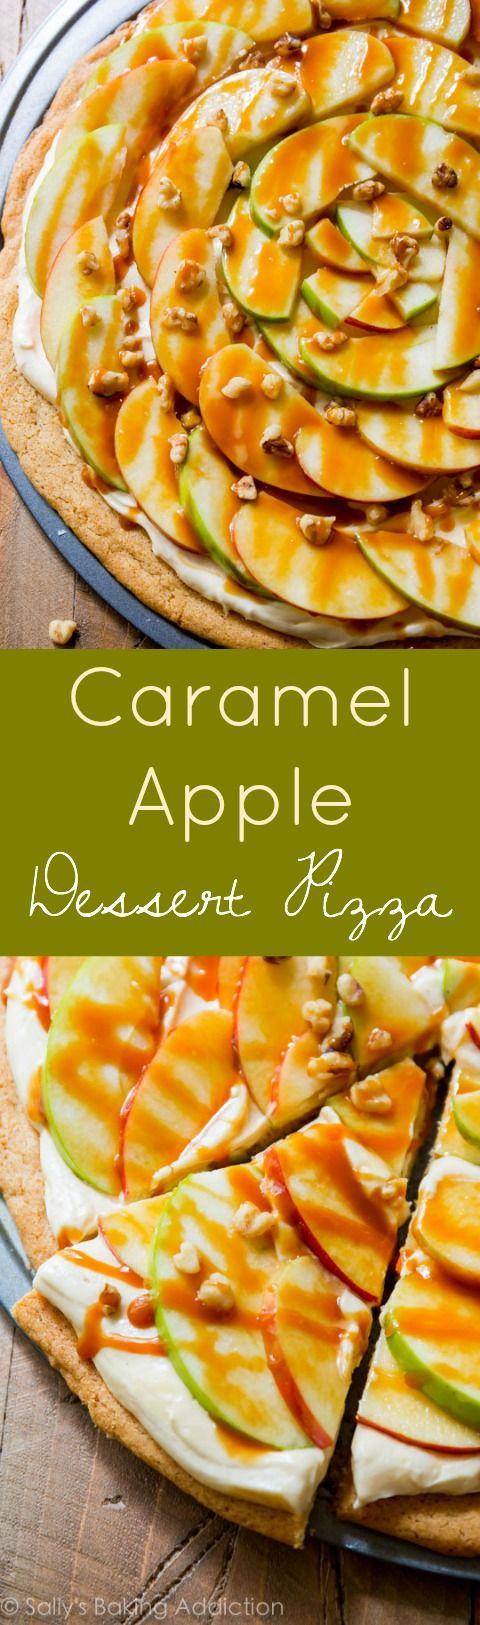 Caramel Apple Dessert Pizza is incredible! Complete with a snickerdoodle cookie crust and caramel cream cheese frosting!